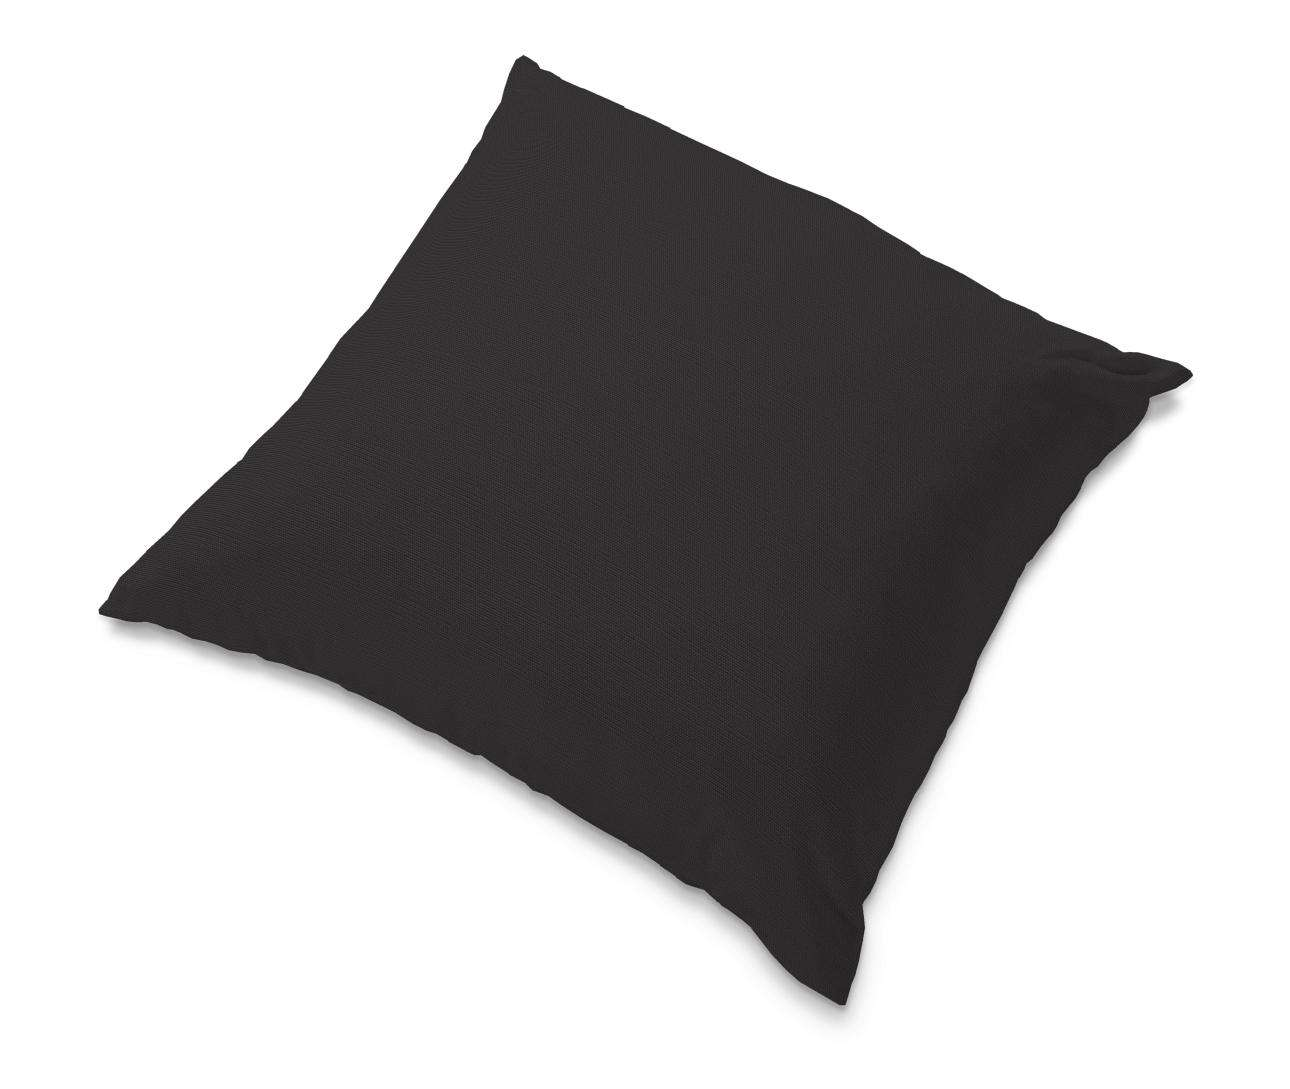 Tomelilla cushion cover 55 × 55 cm (22 × 22 inch) in collection Panama Cotton, fabric: 702-08